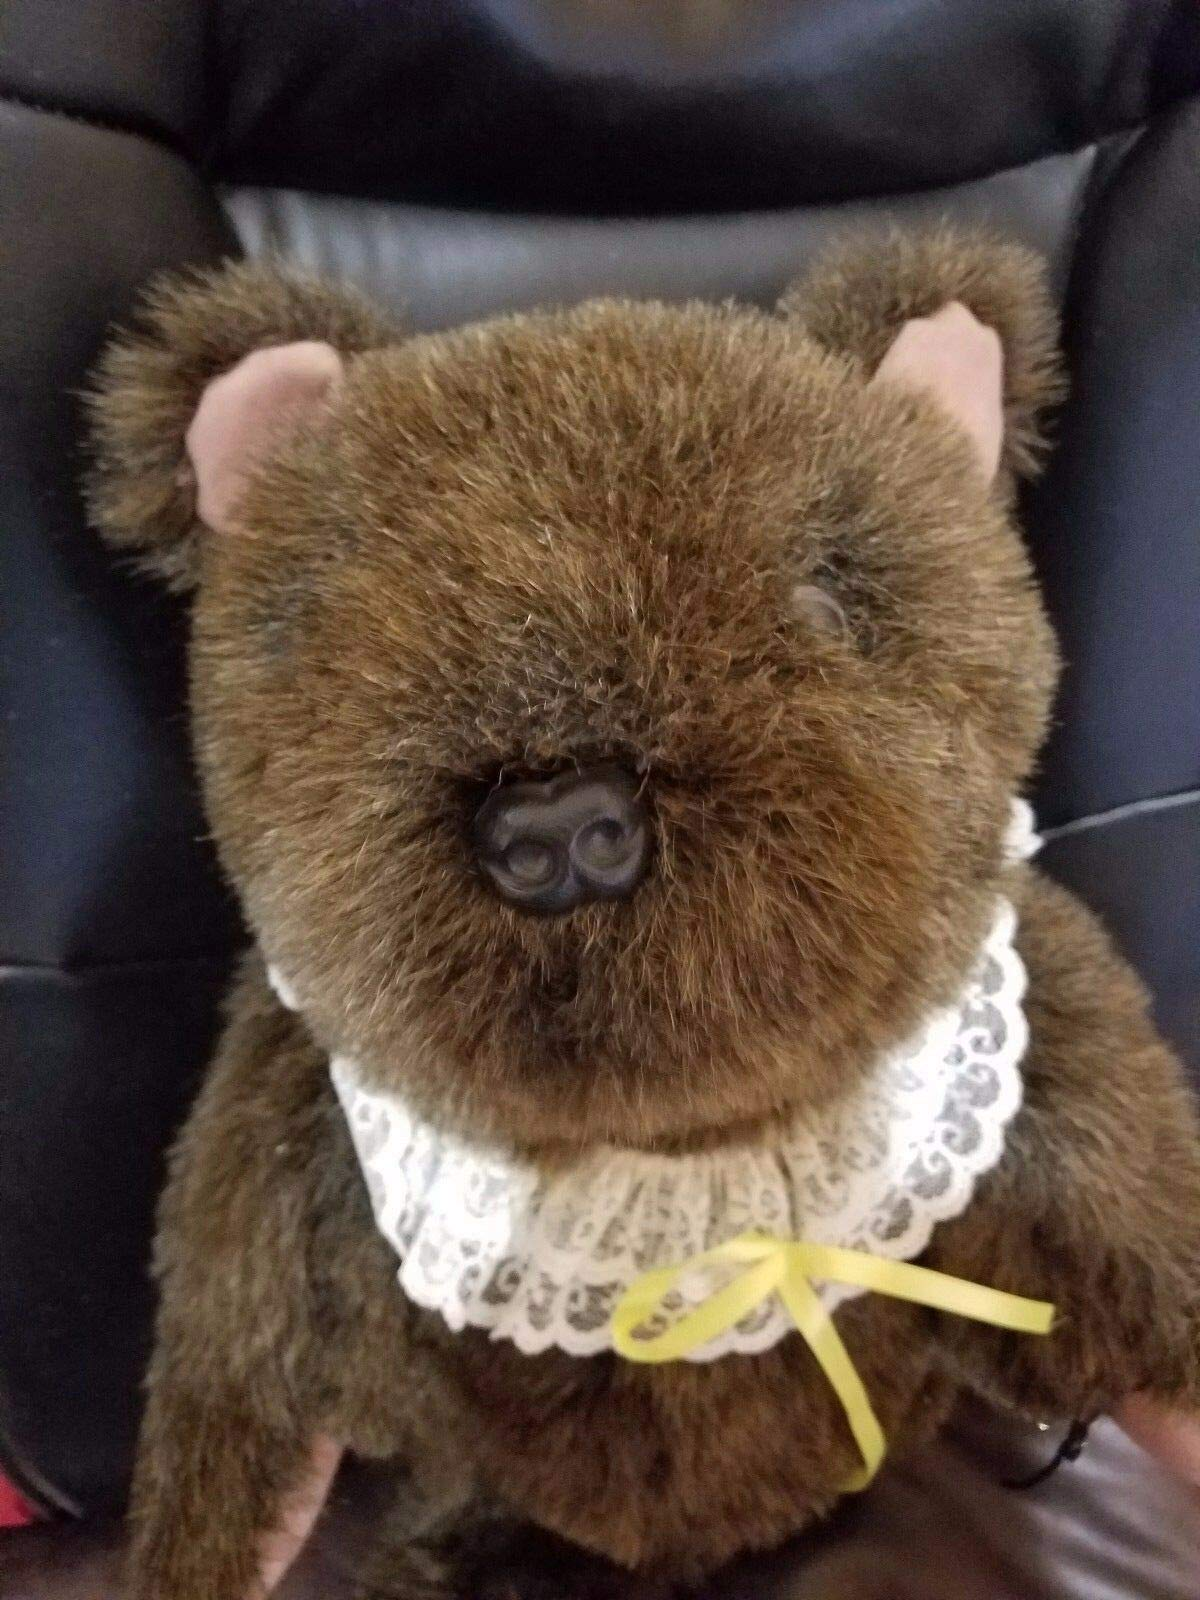 Kingdom Collectibles Handcrafted by The Francisco's, The Baron Bear Company Fully Jointed Cuddly